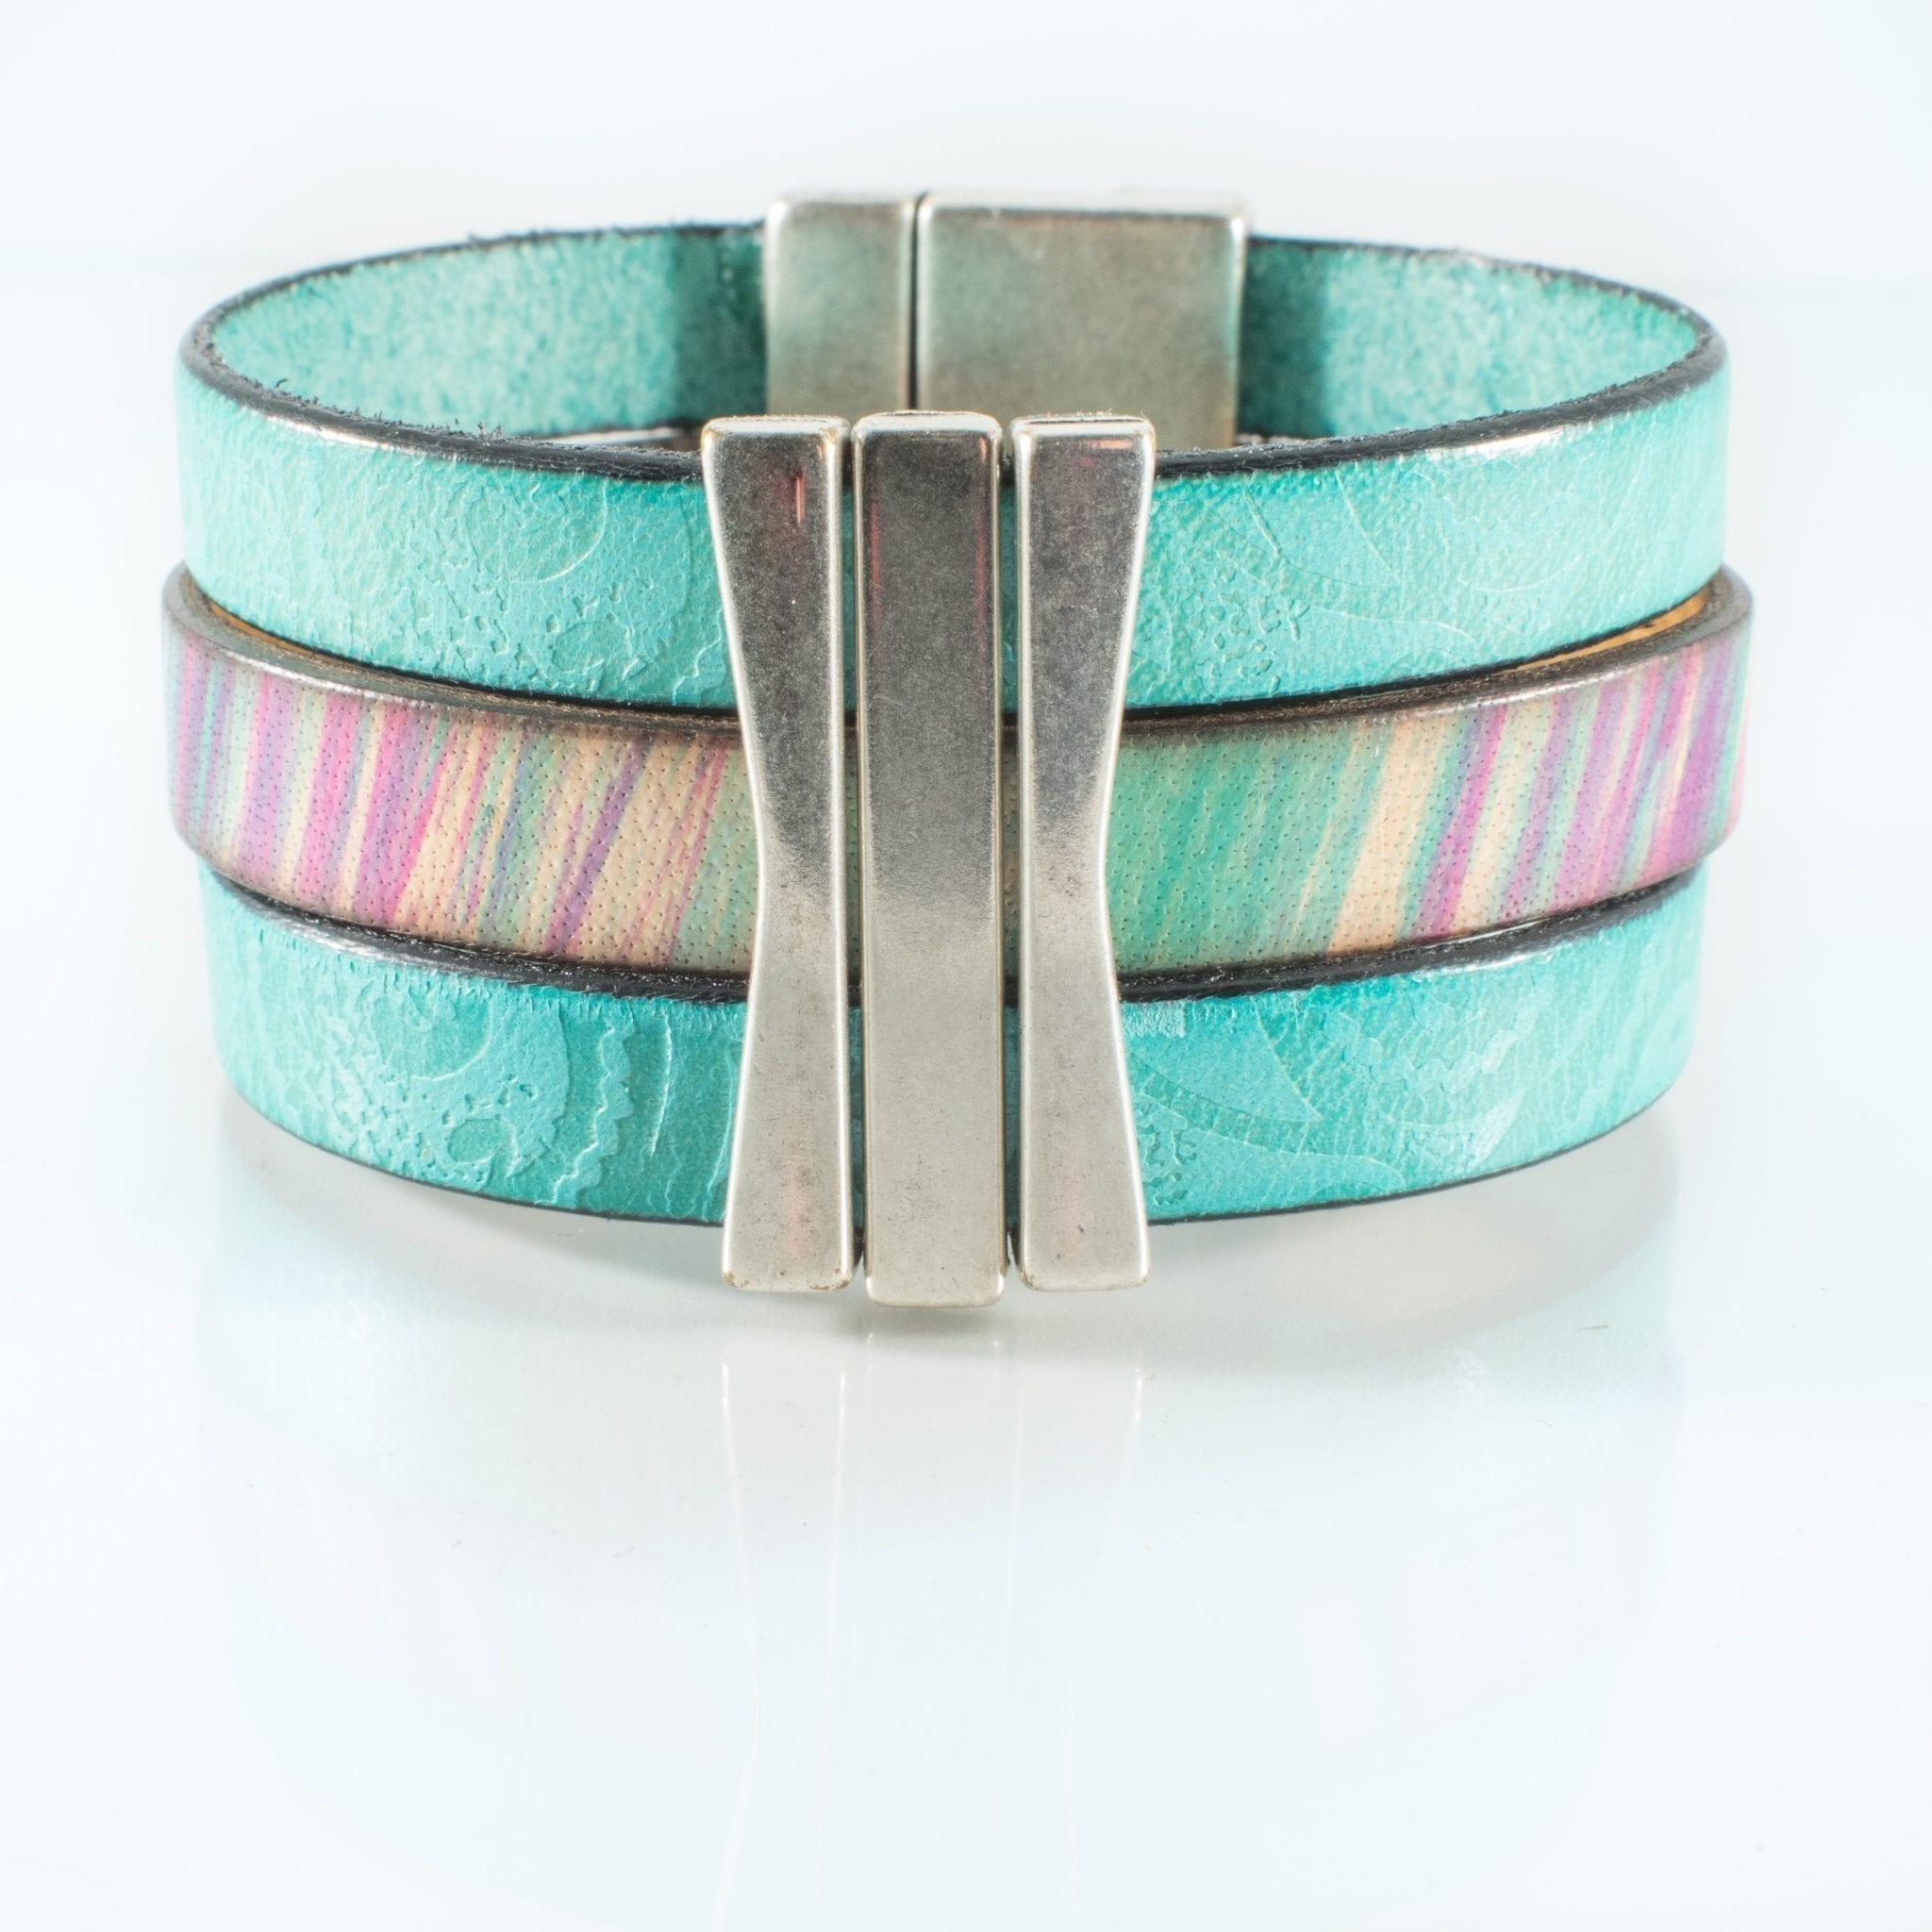 Turquoise Leather Cuff Bracelet